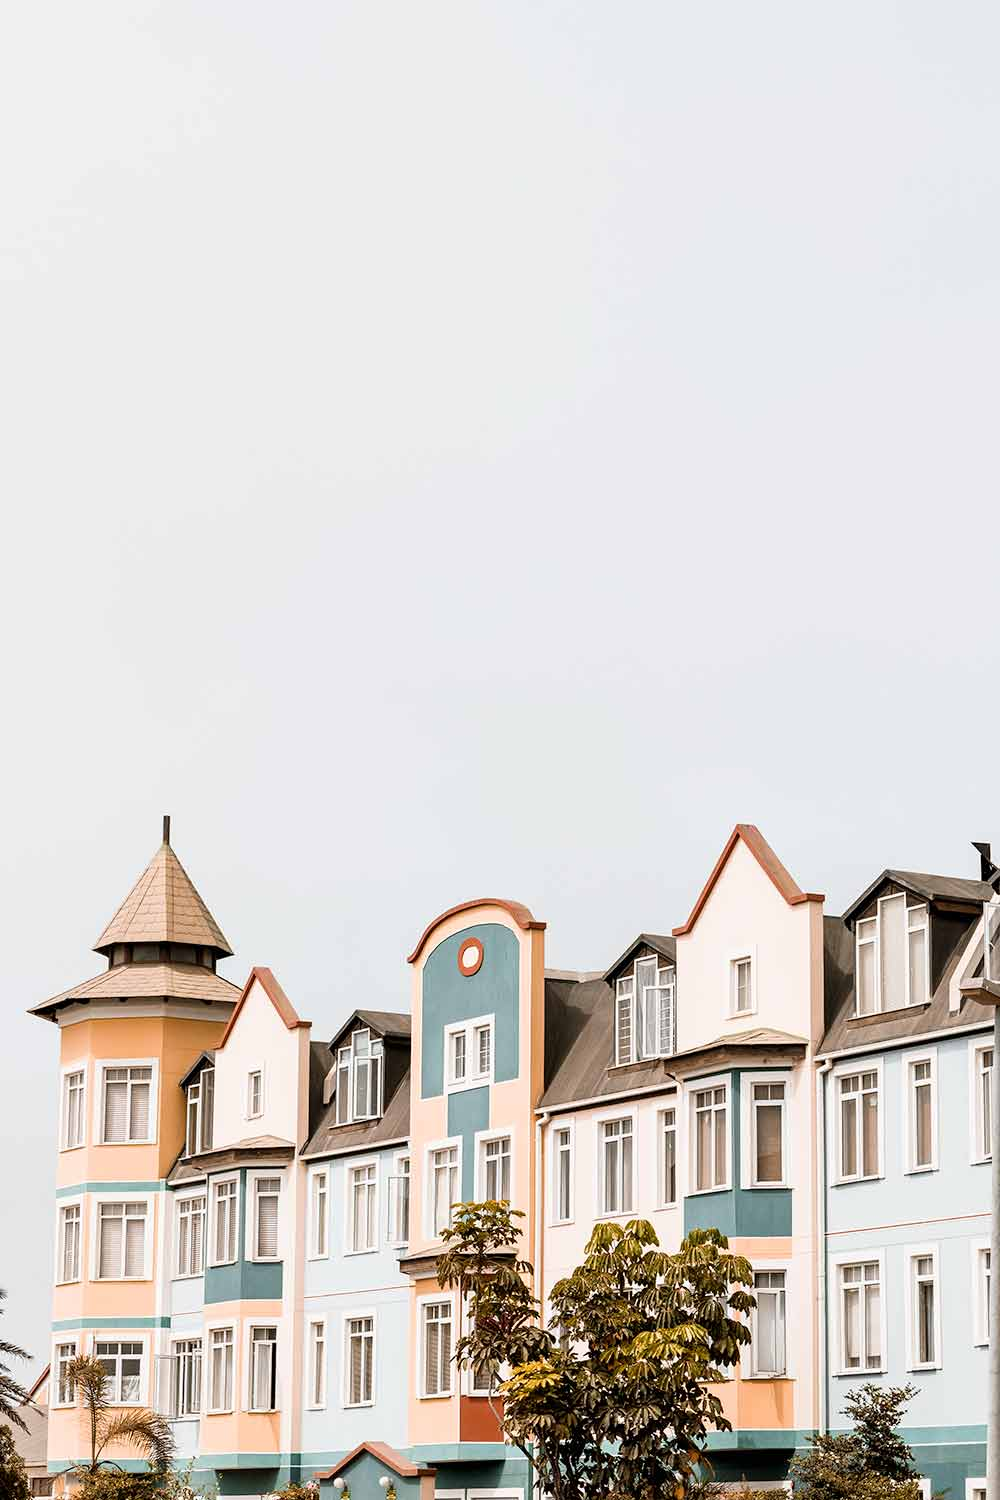 Colorful buildings in the streets of Swakopmund